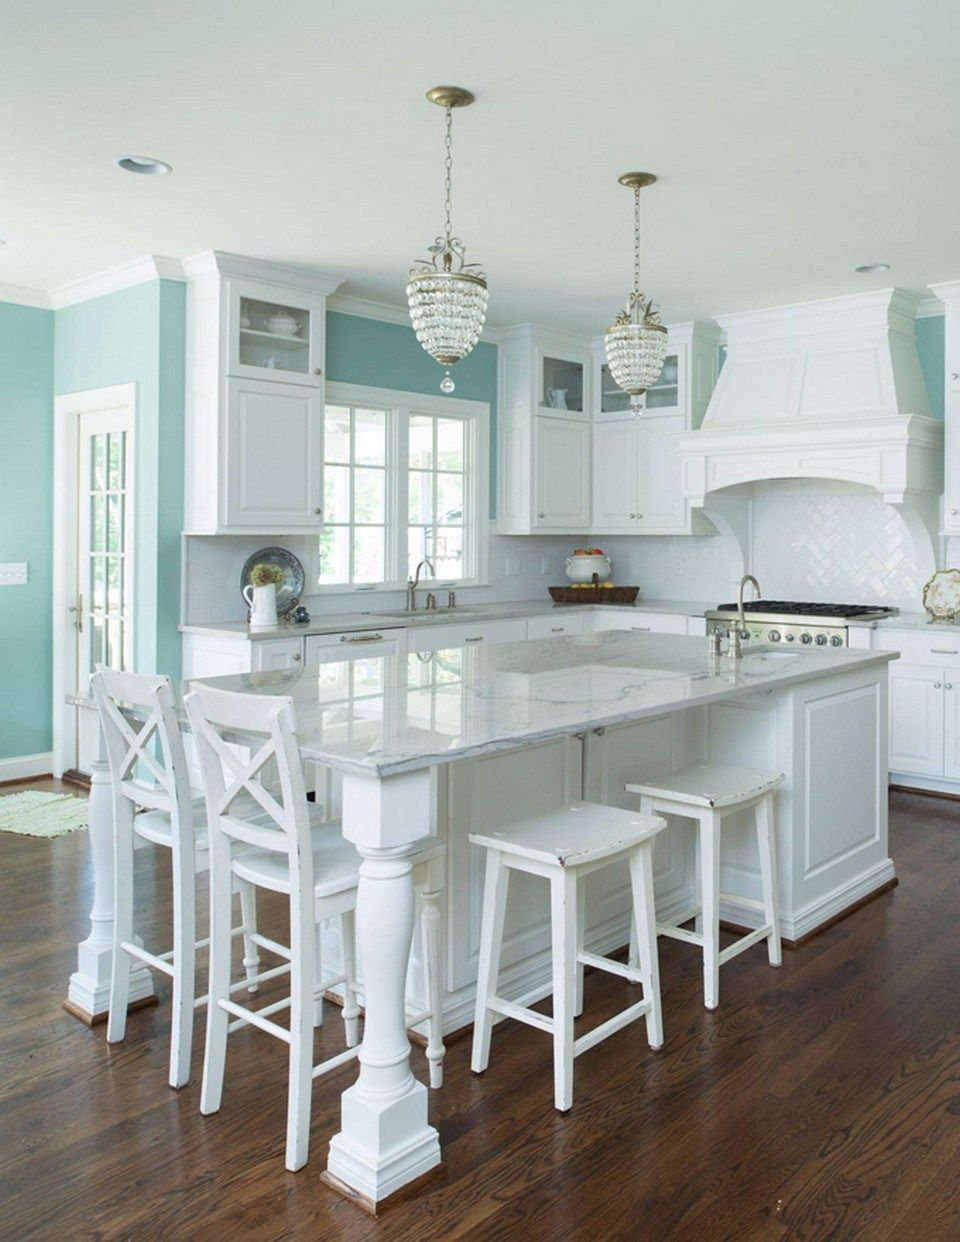 Pin By Ncoyle On I Should Do This In 2020 Beach House Kitchens Kitchen Design Small Home Kitchens